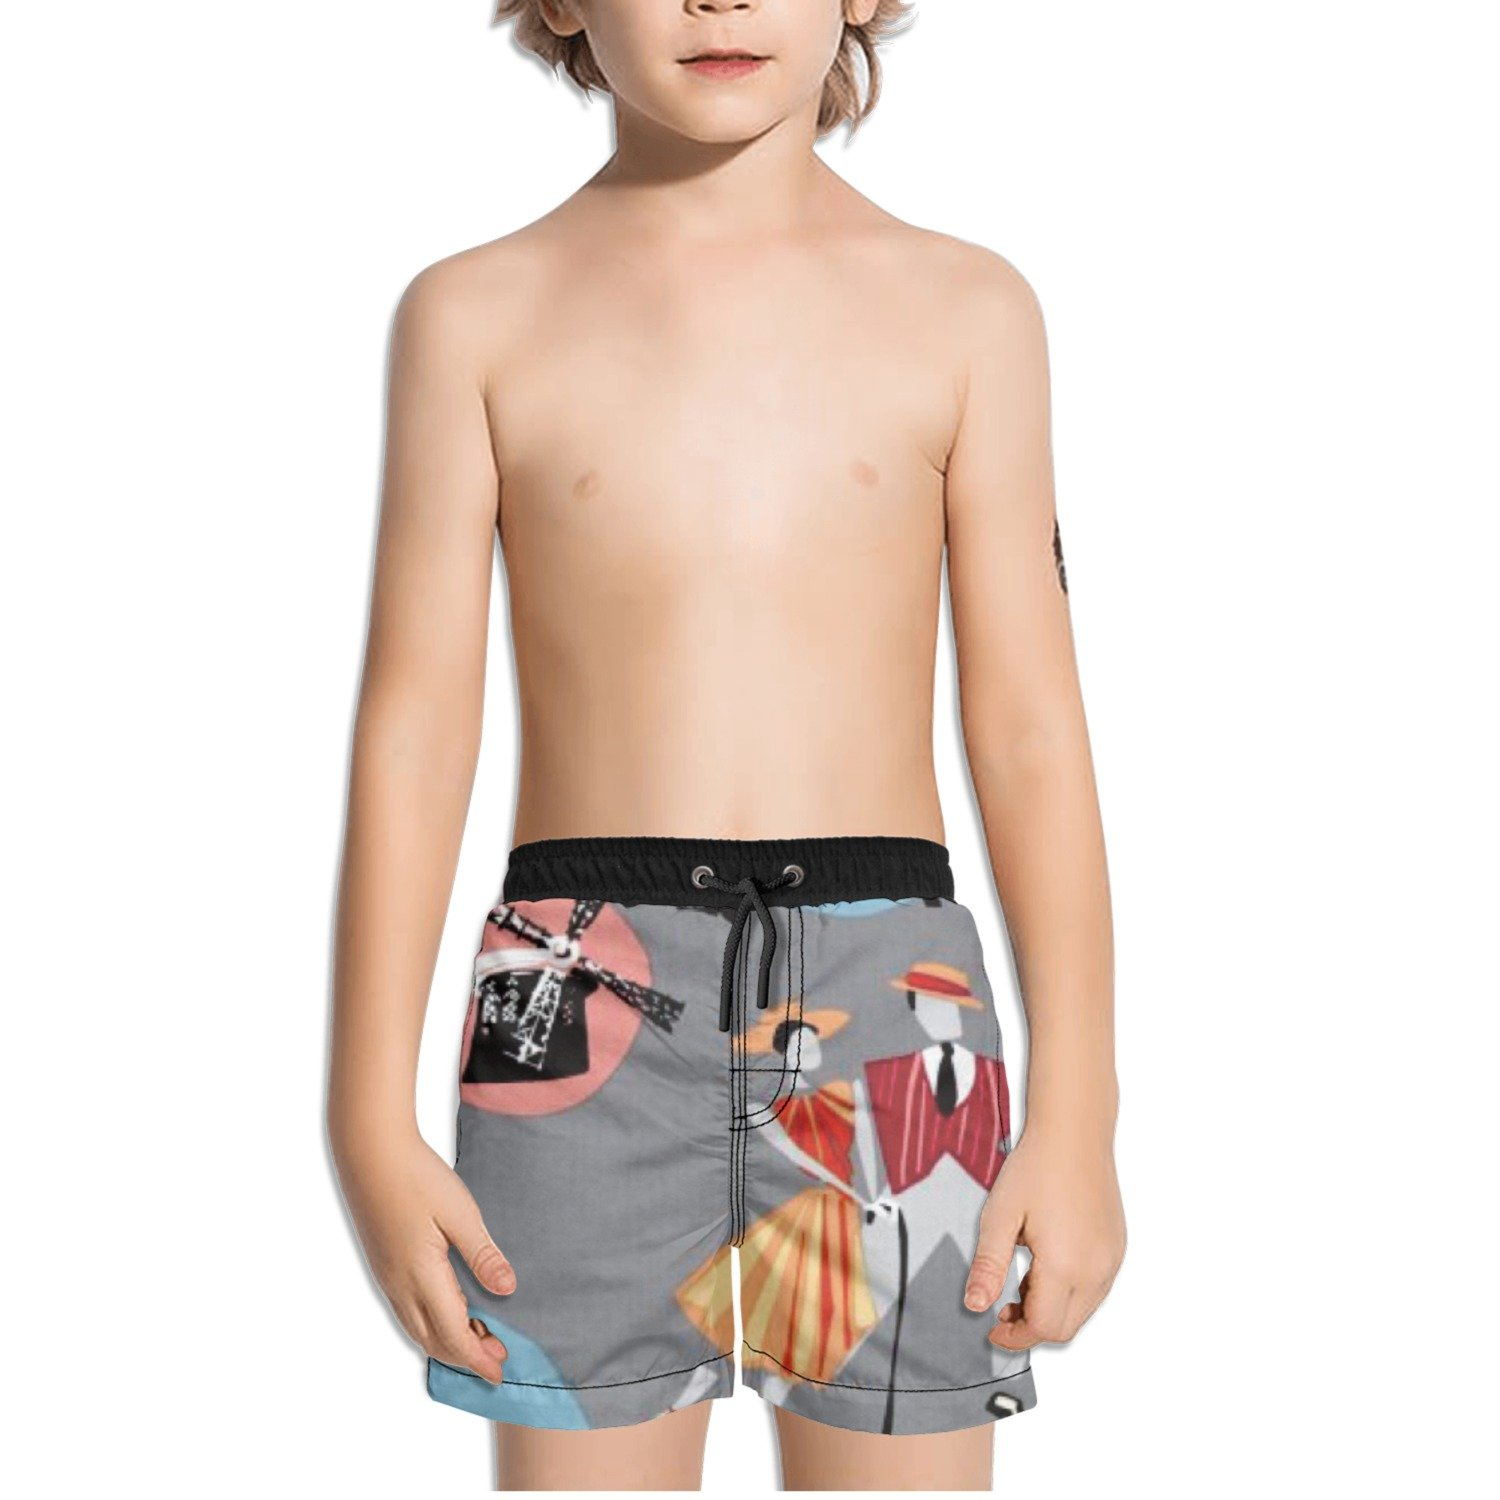 Ouxioaz Boys Swim Trunk Dancer Paris Eiffel Tower Beach Board Shorts